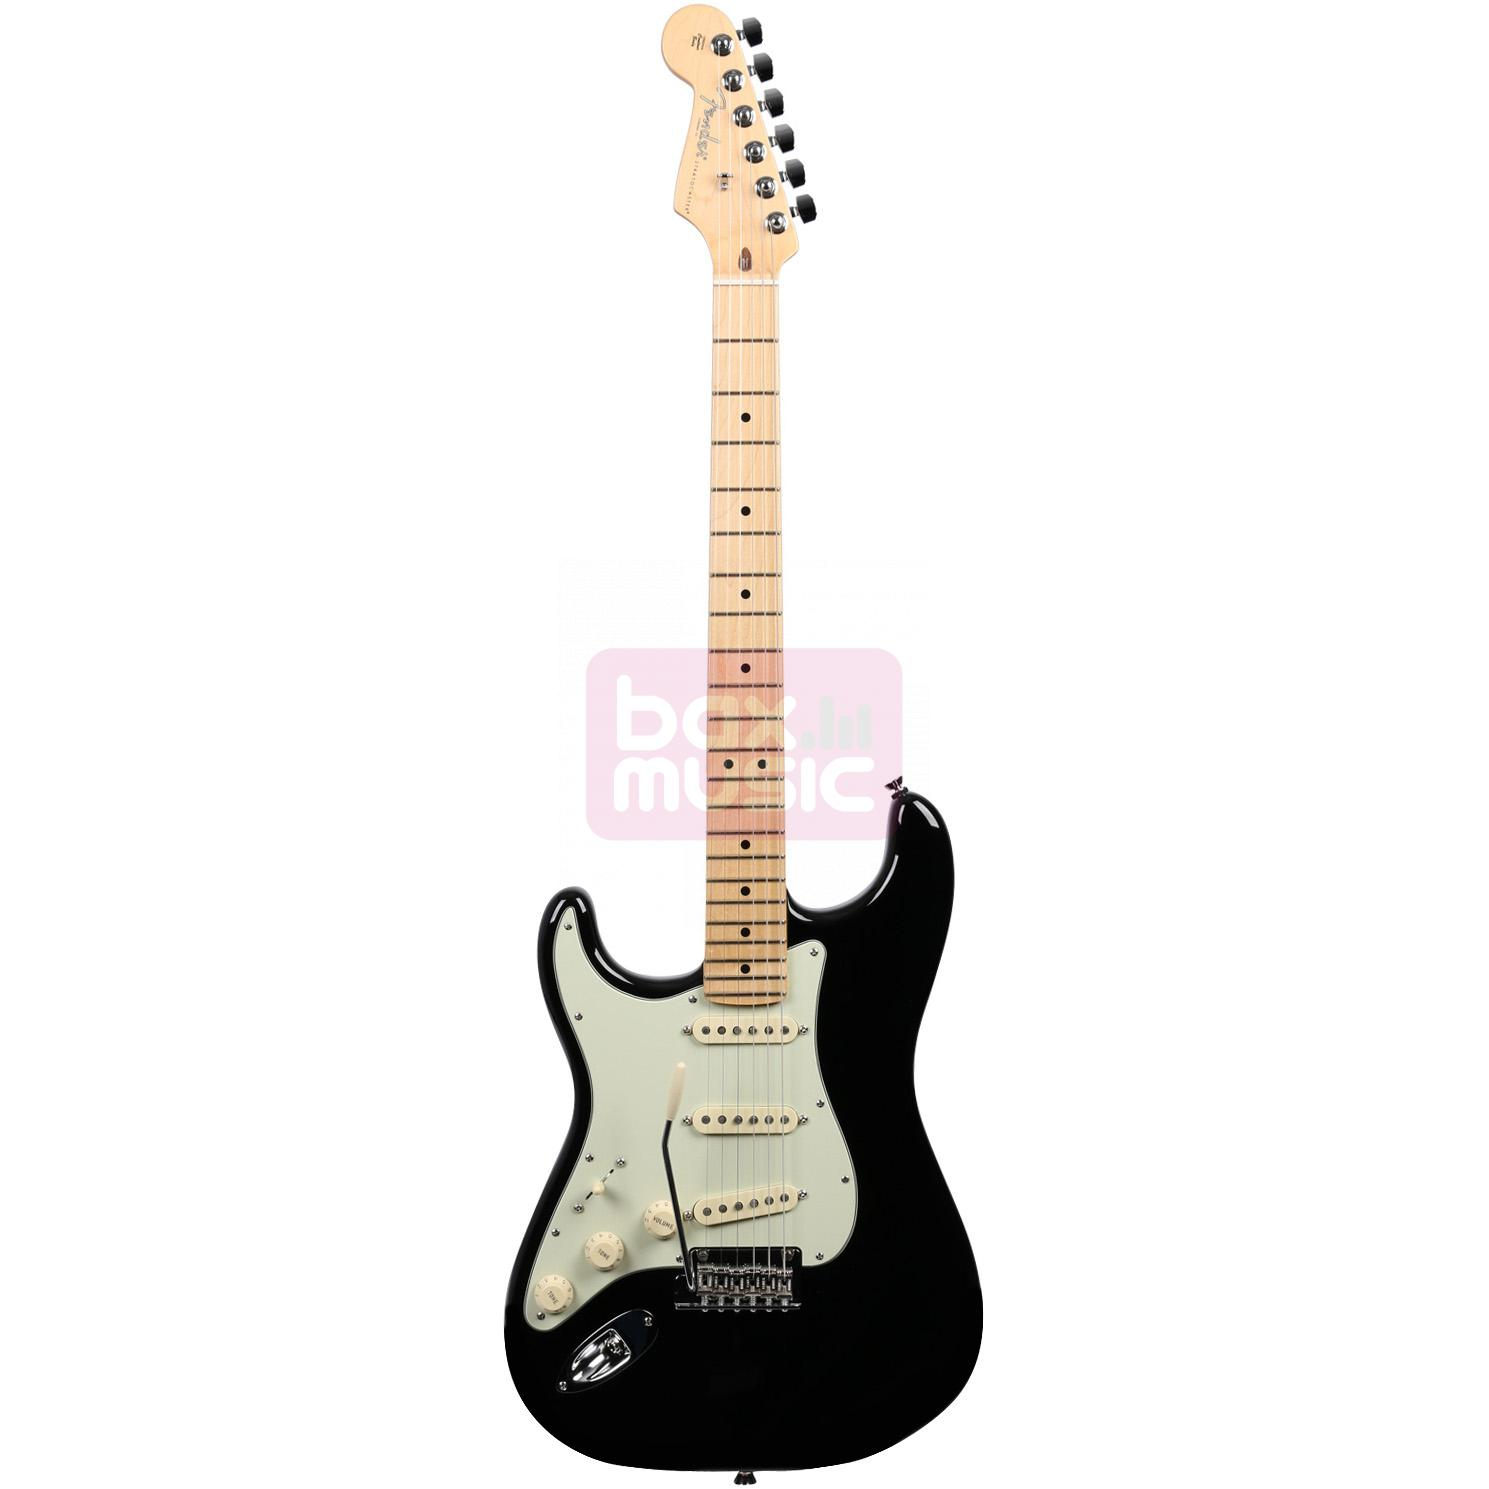 Fender American Professional Stratocaster LH Black MN